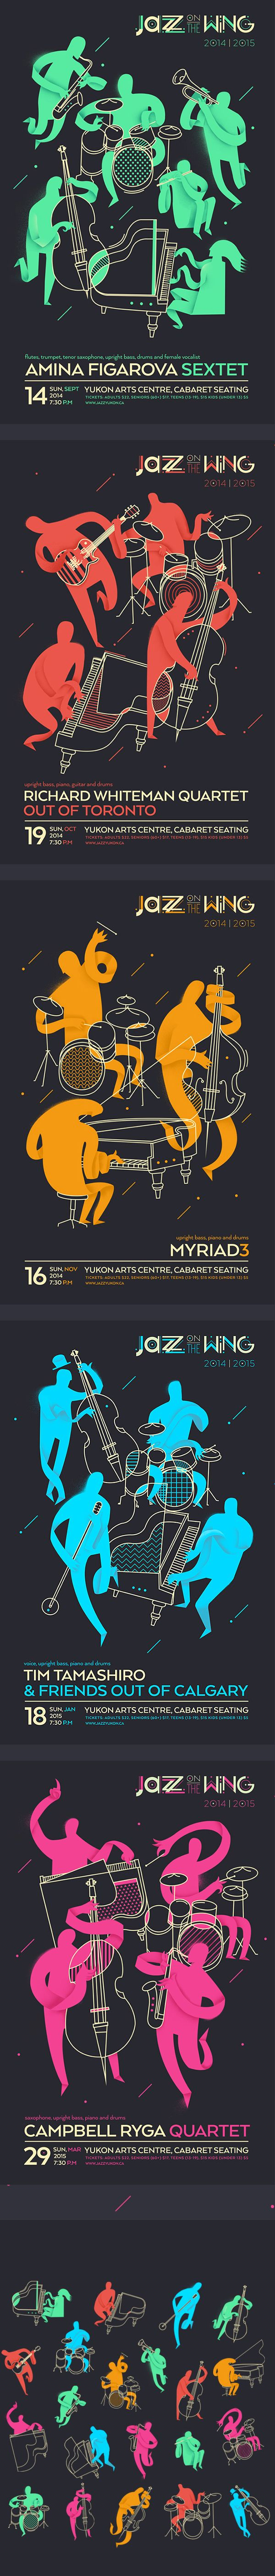 Jazz on the Wing 2014/2015